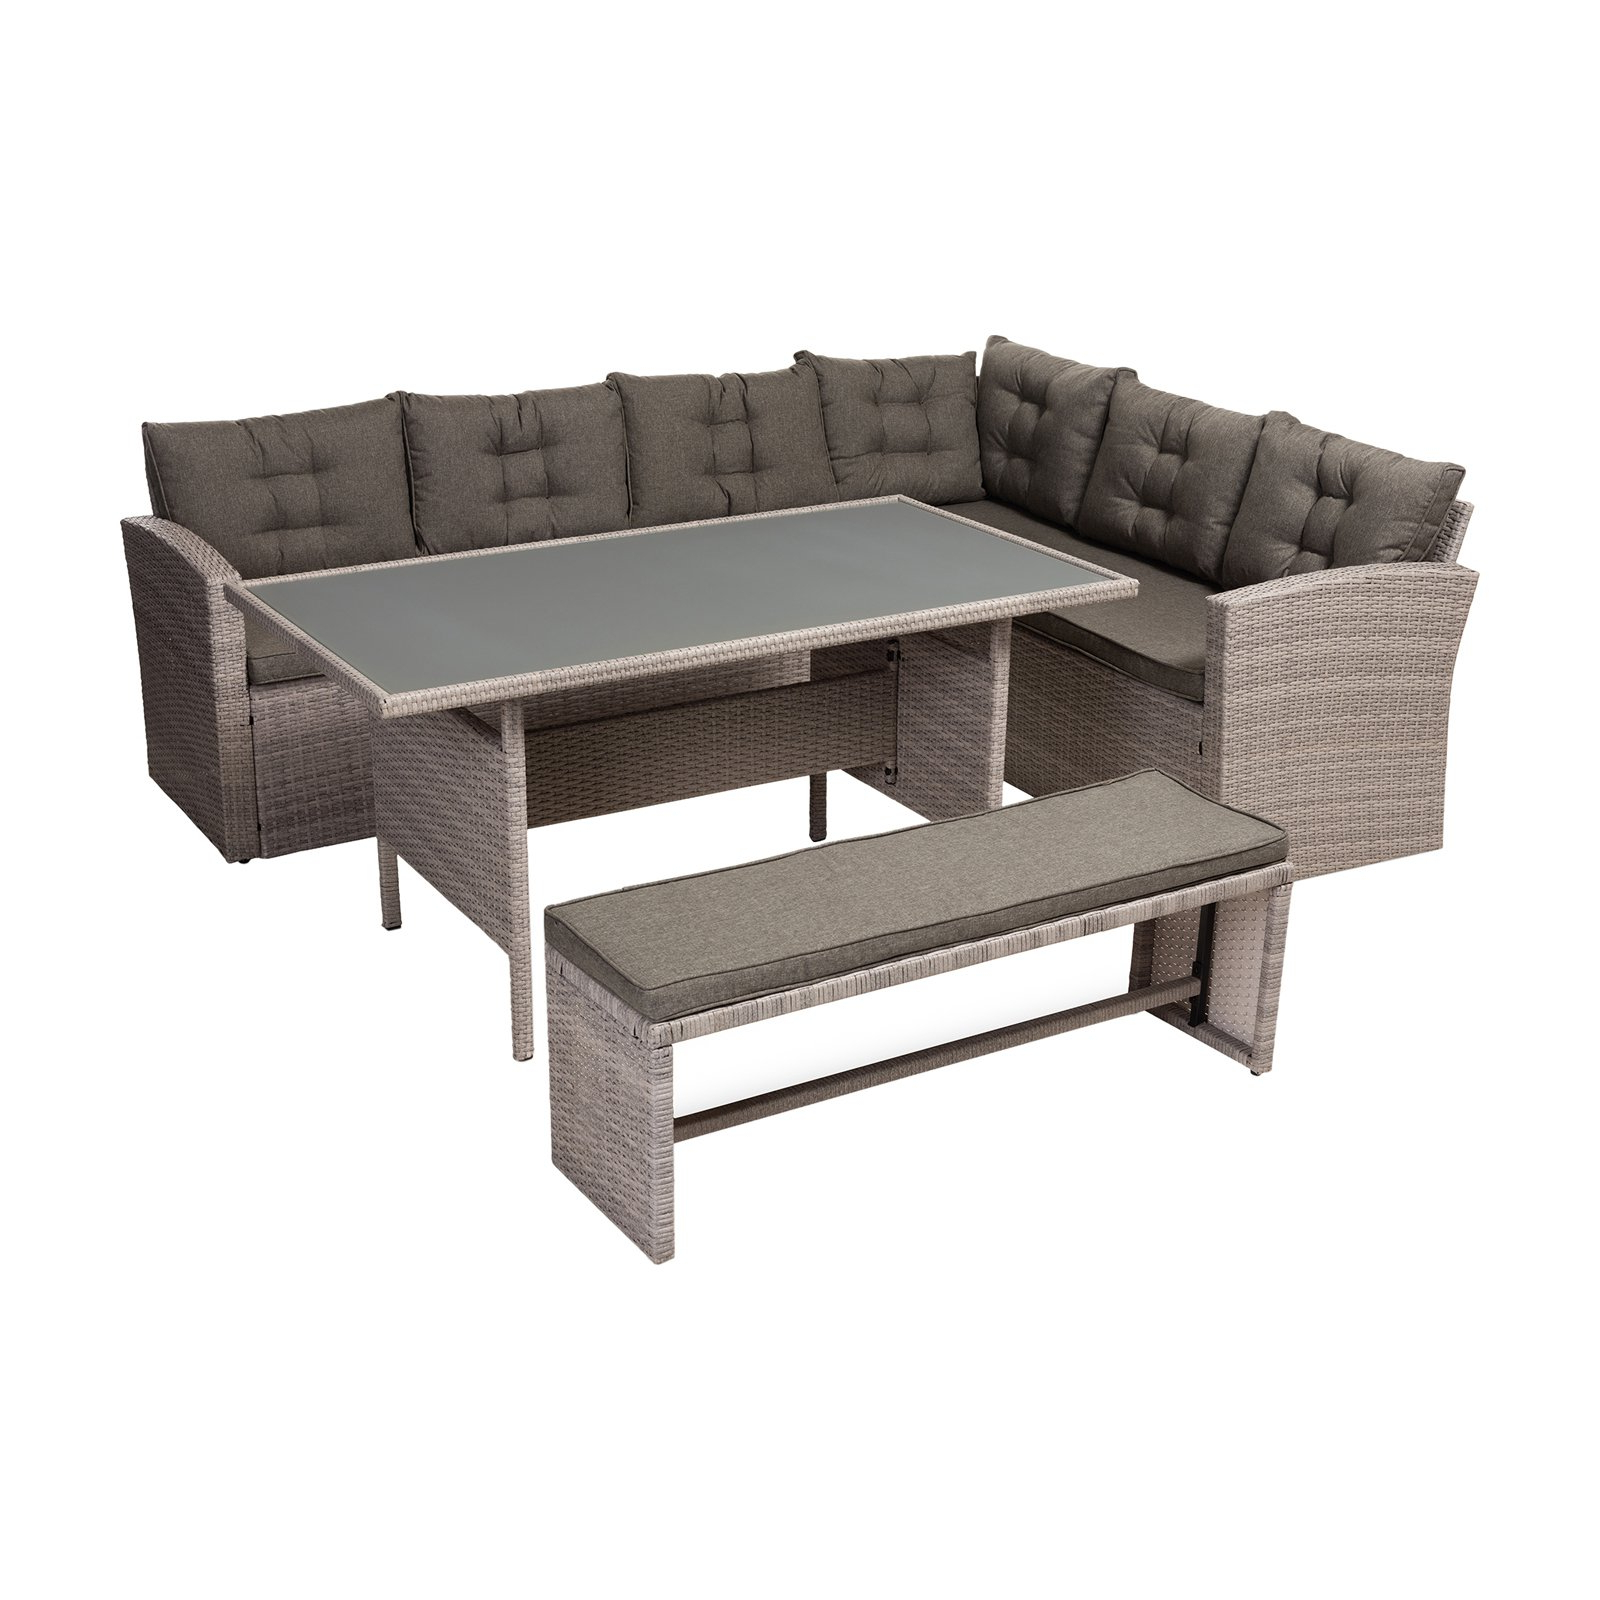 Preferred Outdoor Baxton Studio Eneas Rattan 3 Piece Corner Sofa Patio Pertaining To Rowley Patio Sofas Set With Cushions (View 14 of 20)